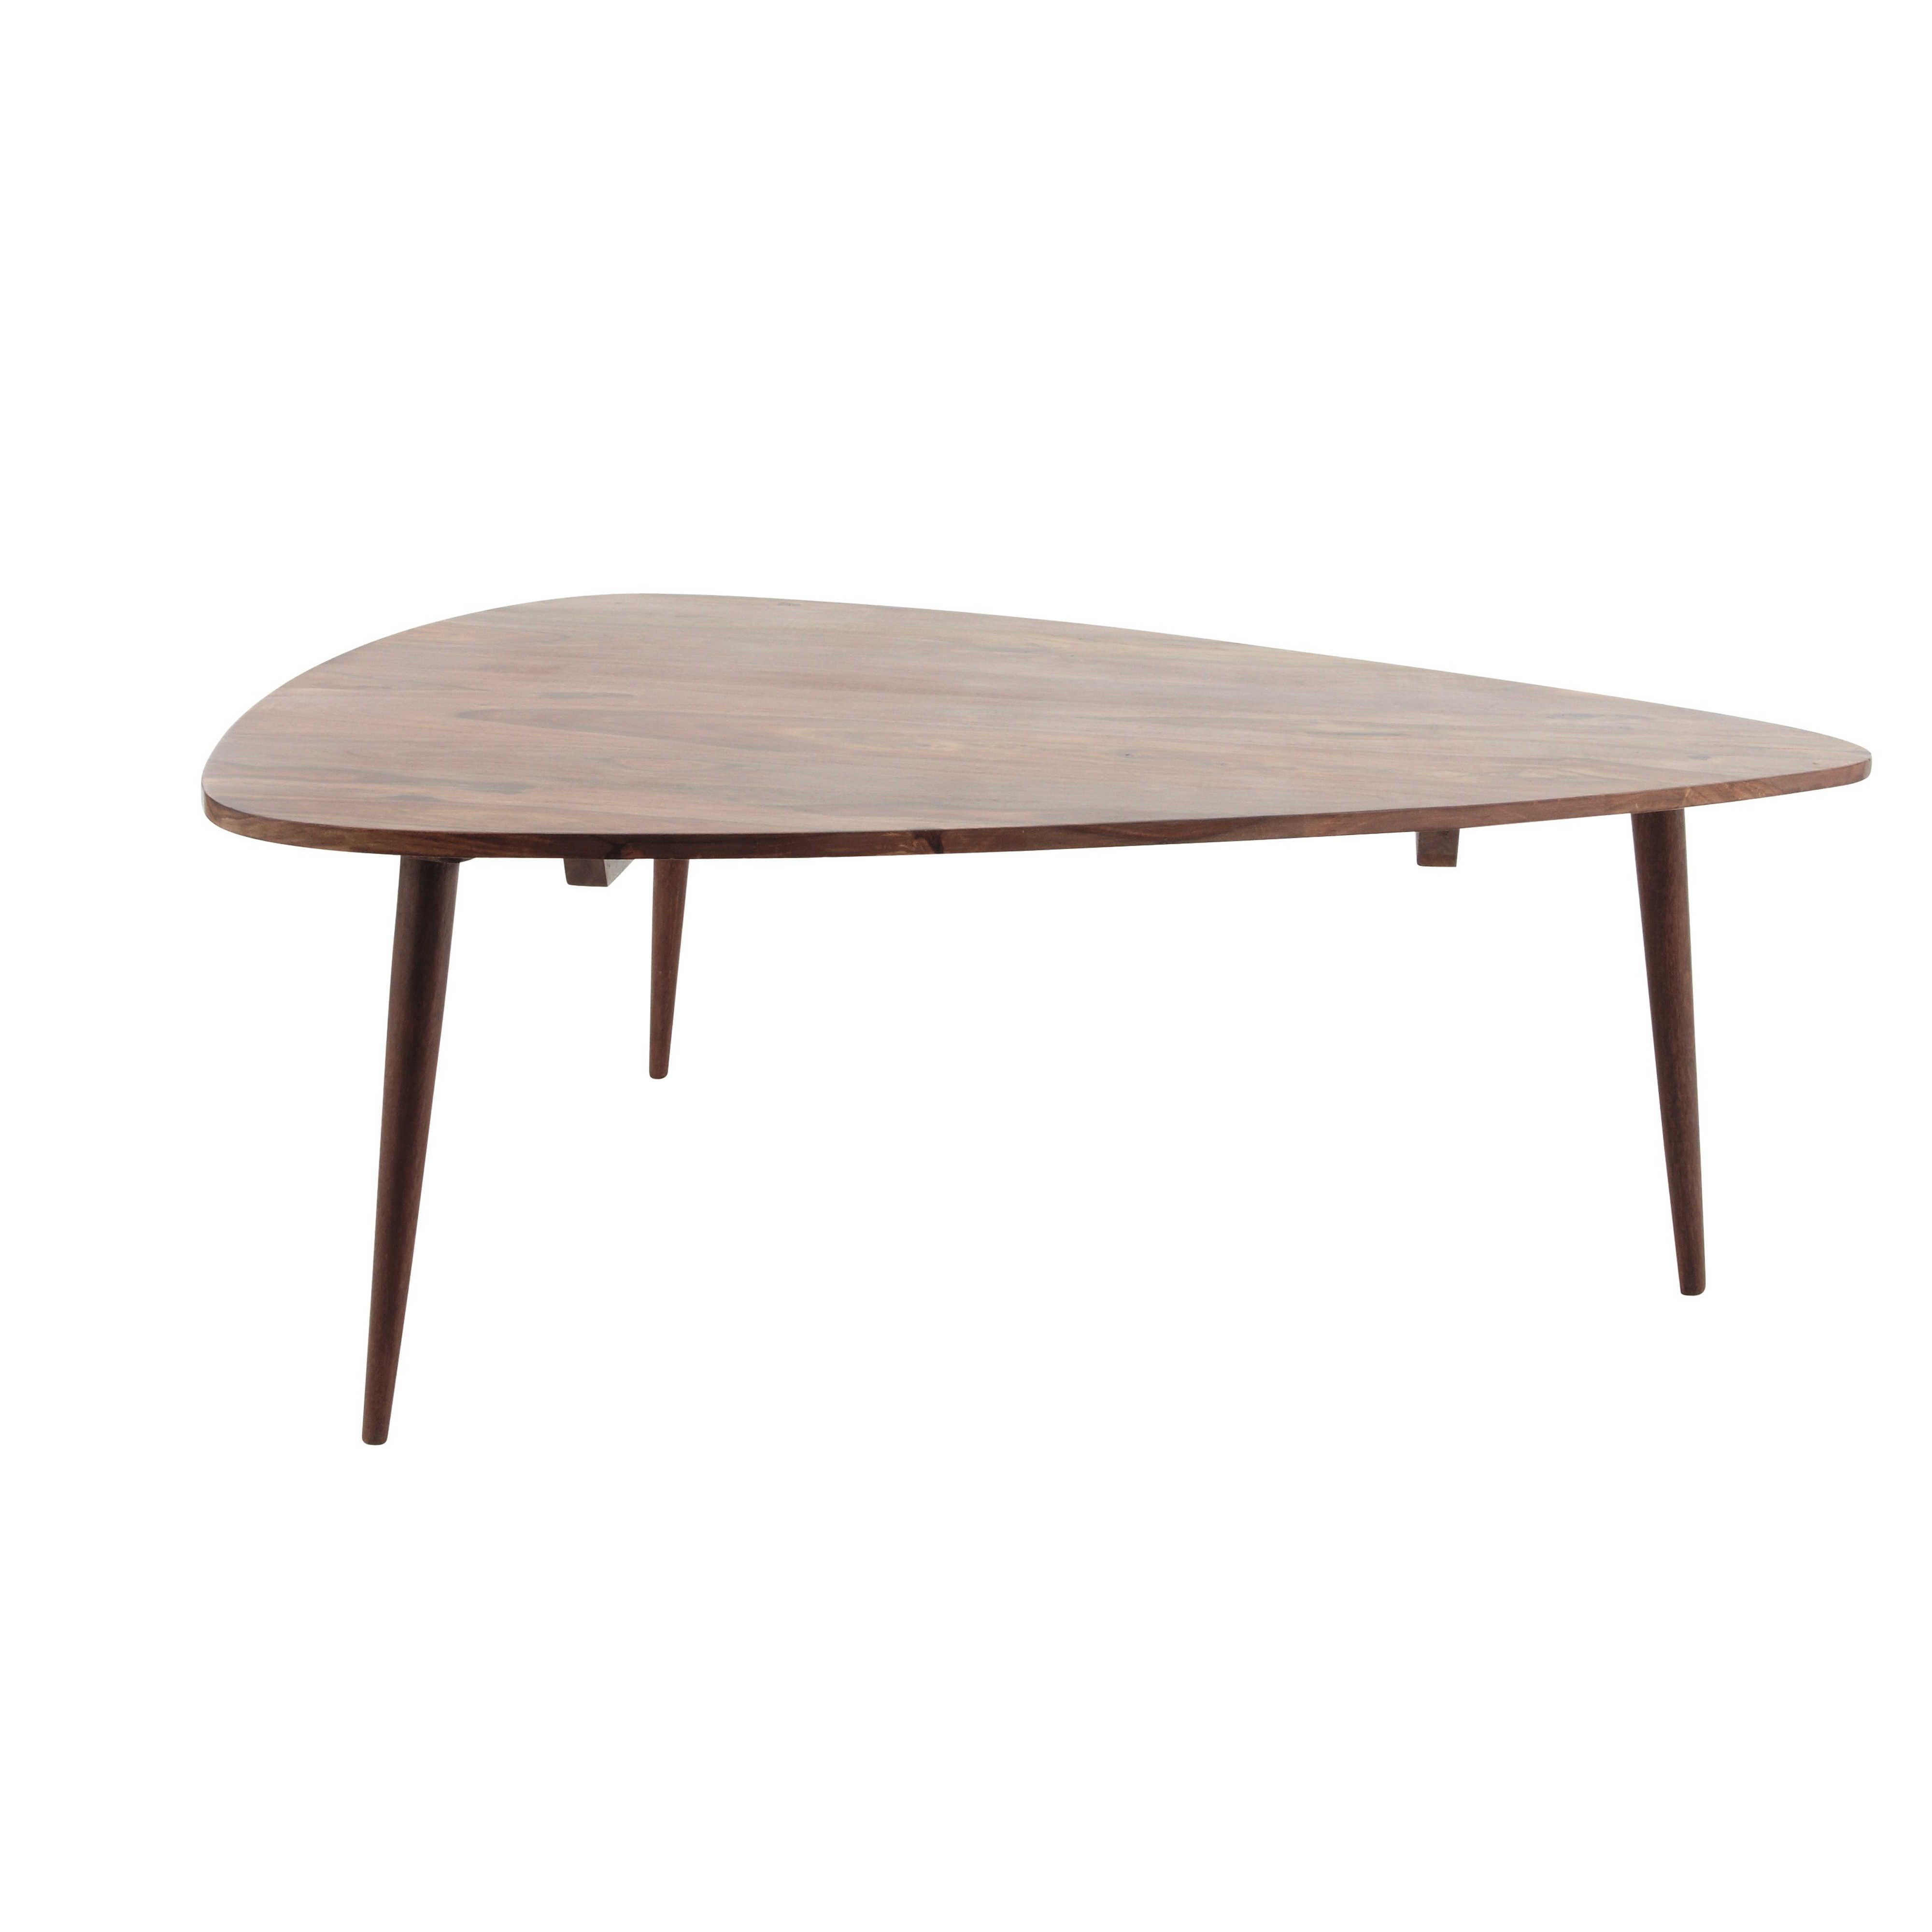 Table Basse Bois Vintage.Table Basse Vintage En Sheesham Massif New Deco Coffe